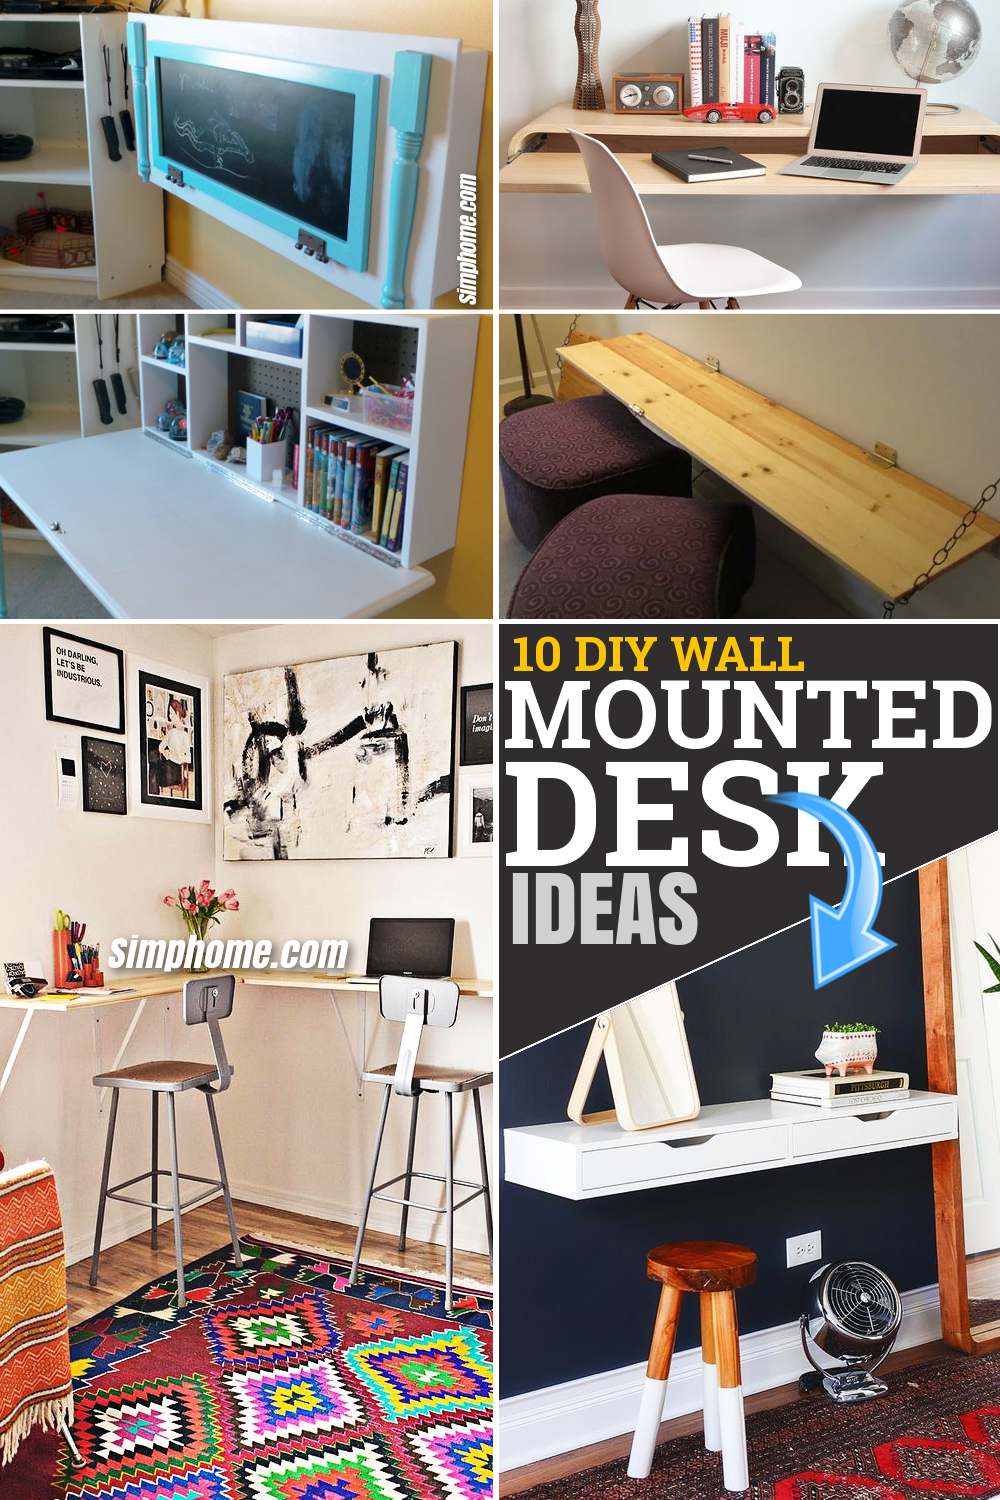 10 DIY Wall Mounted Desk Ideas for a Perfect Storage Solution via Simphome.com Featured Pinterest Image